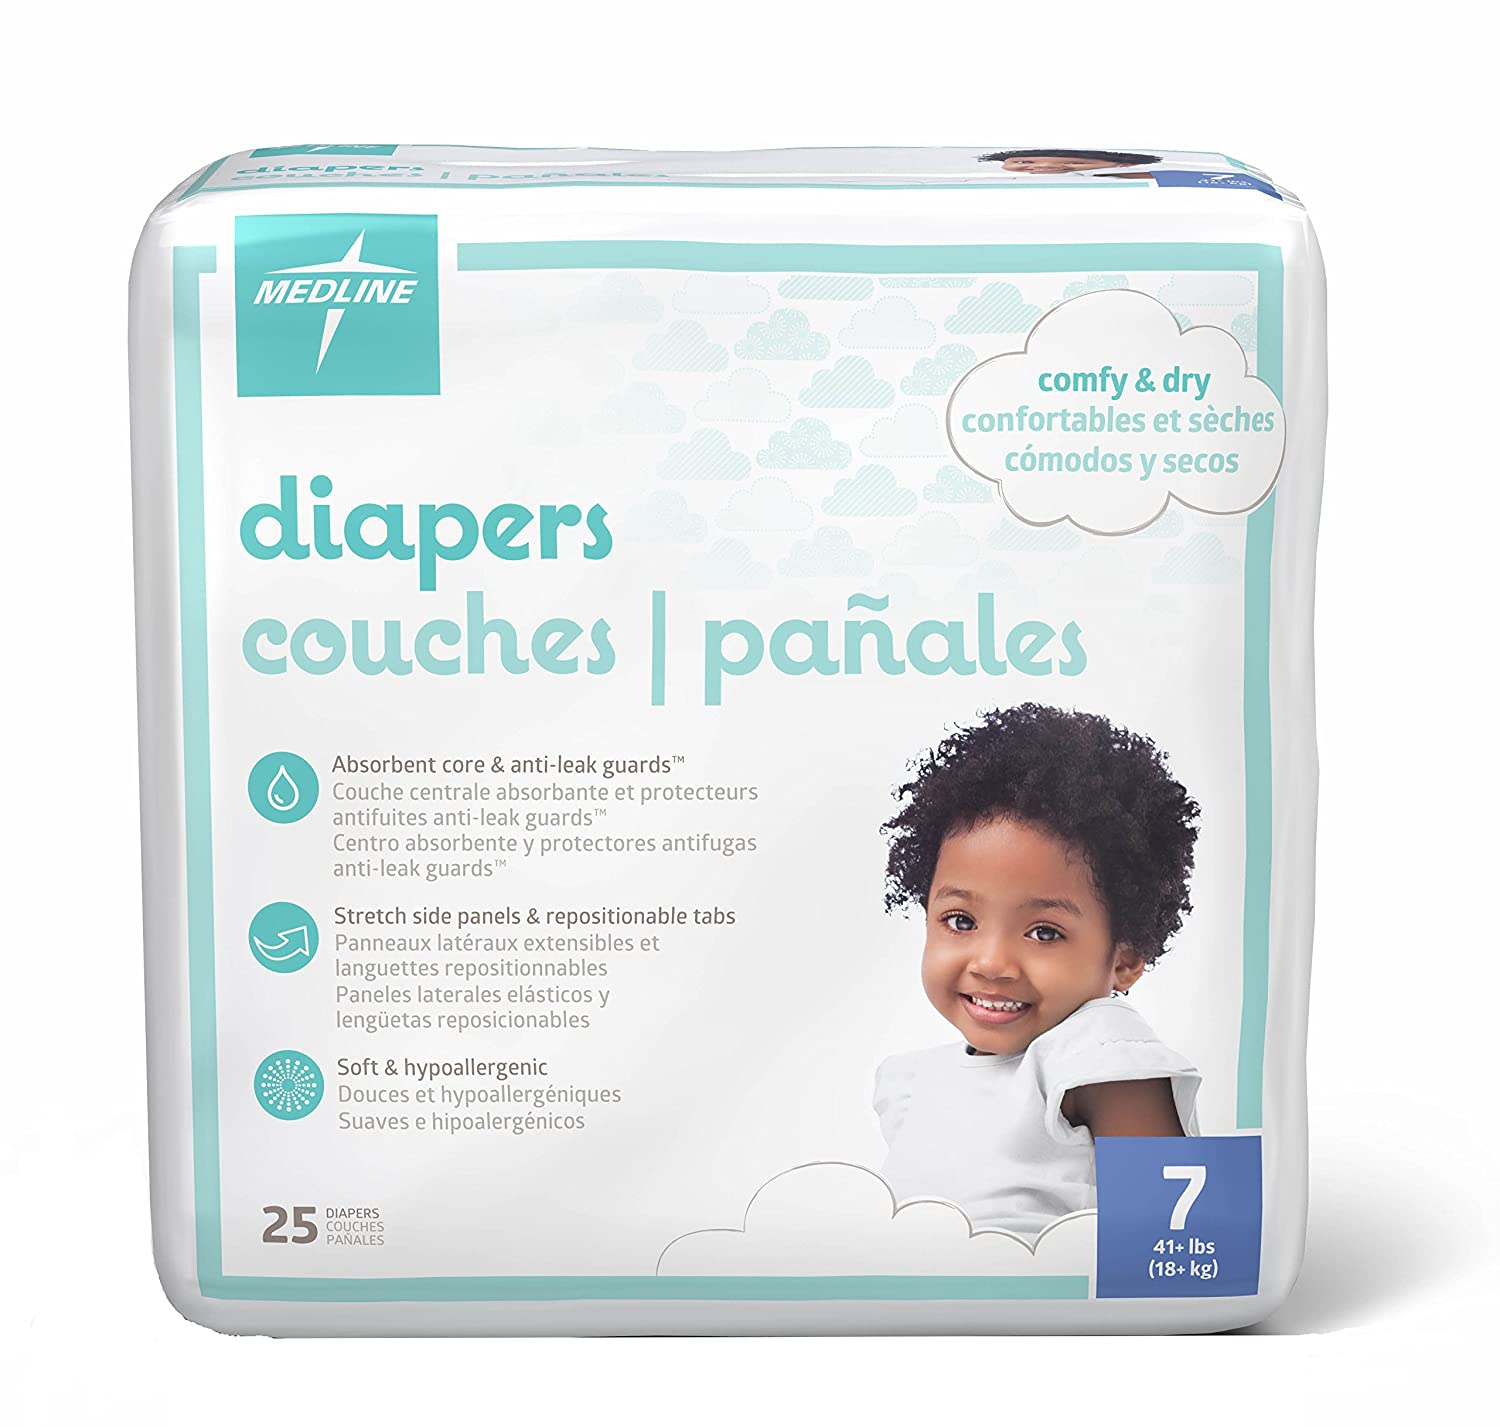 Medline - MBD2007Z MBD2007 Baby Diapers, Size 7, 41+lbs. (Pack of 25)